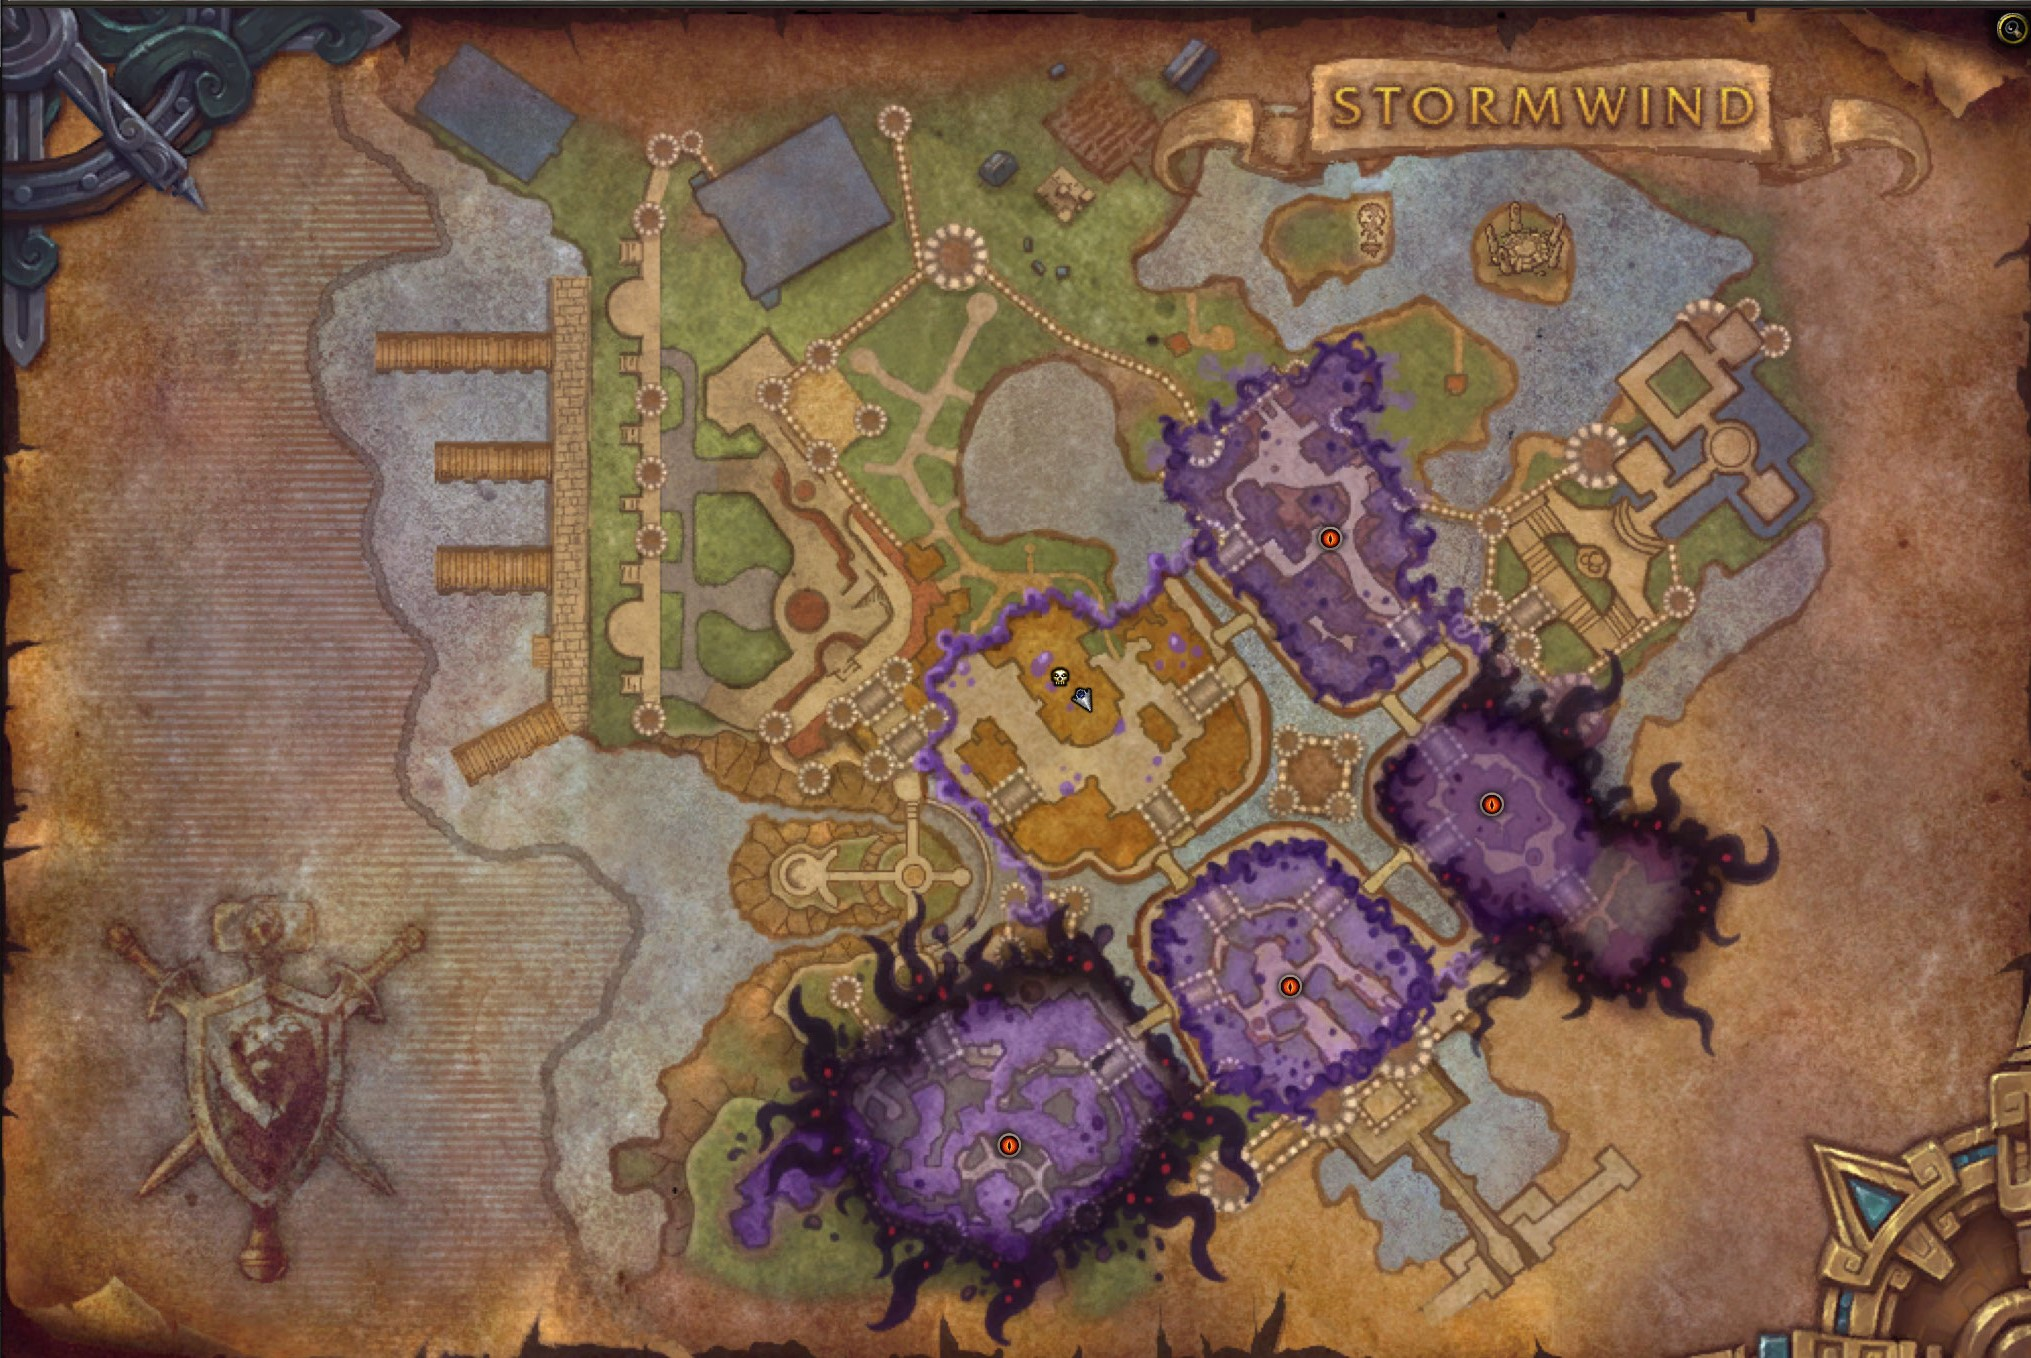 Horrific Vision of Stormwind Map